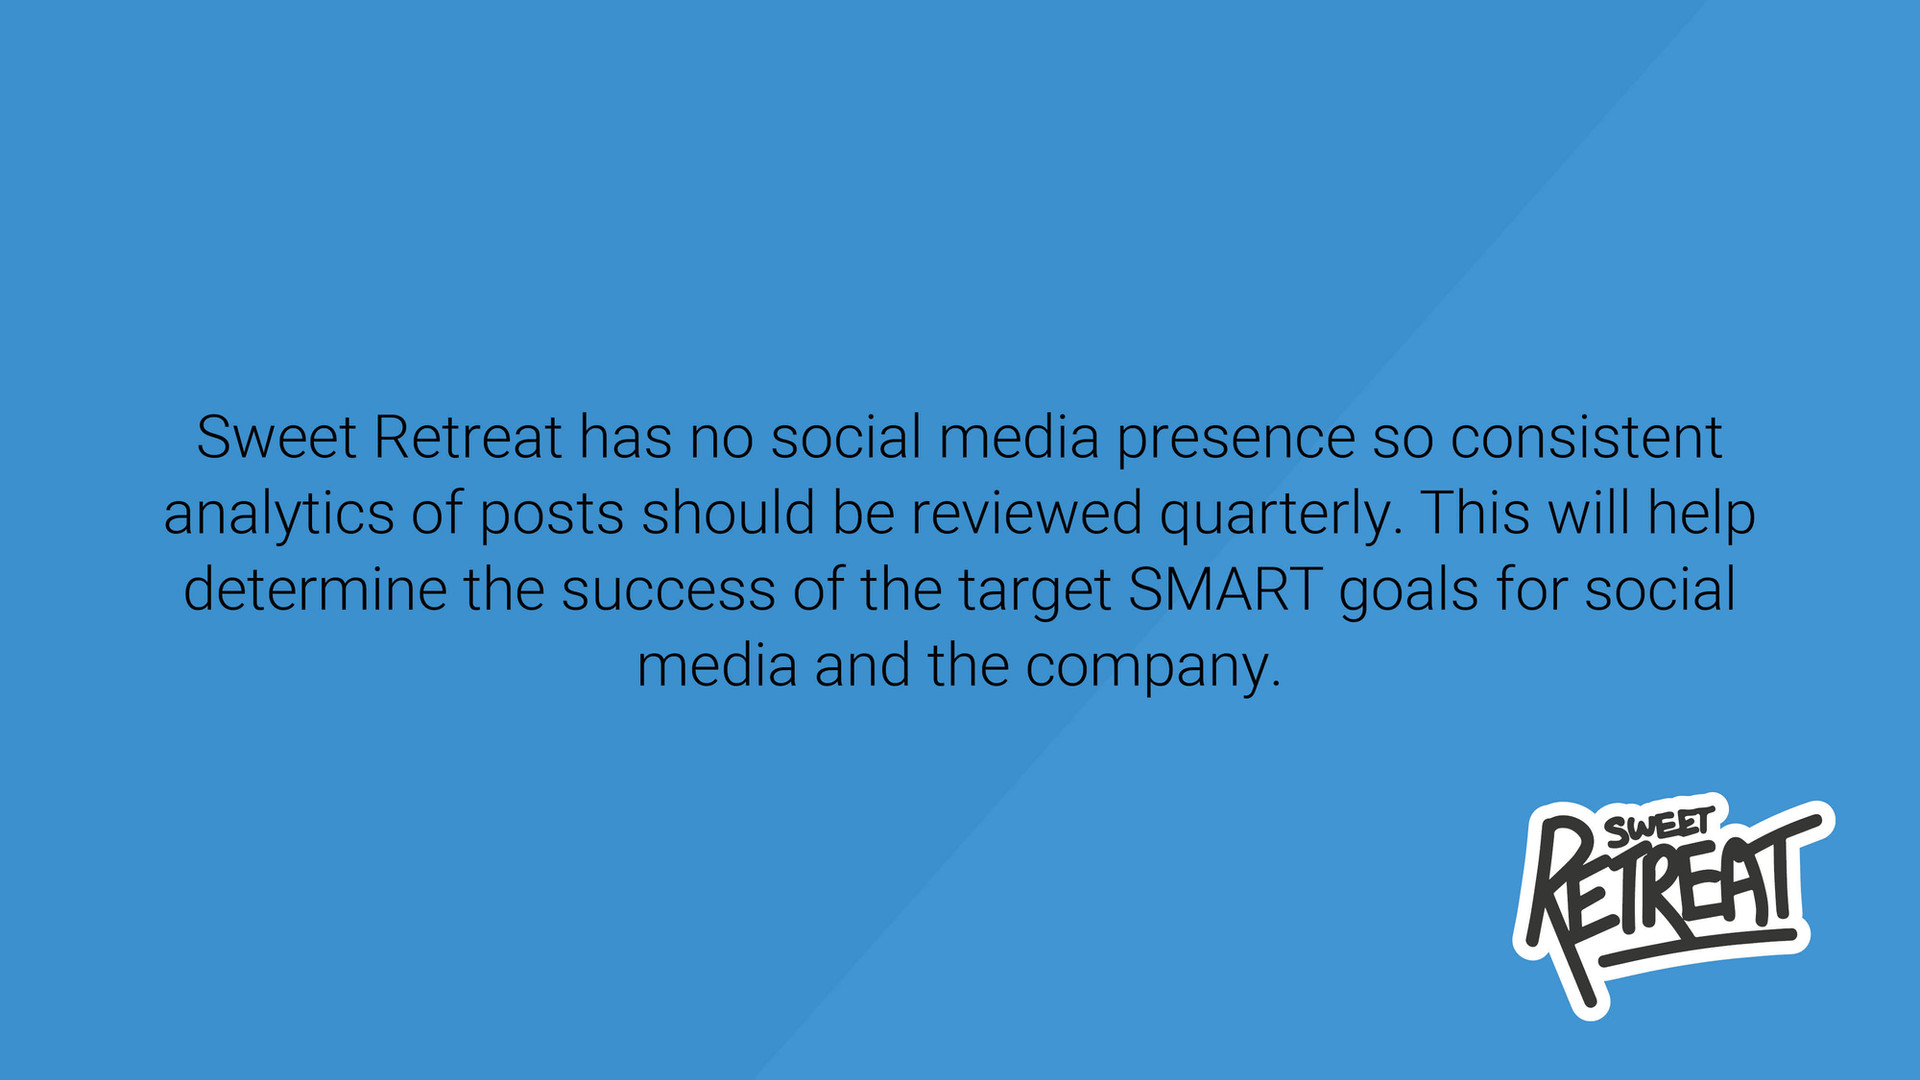 Sweet Retreat has no Social Media Presence